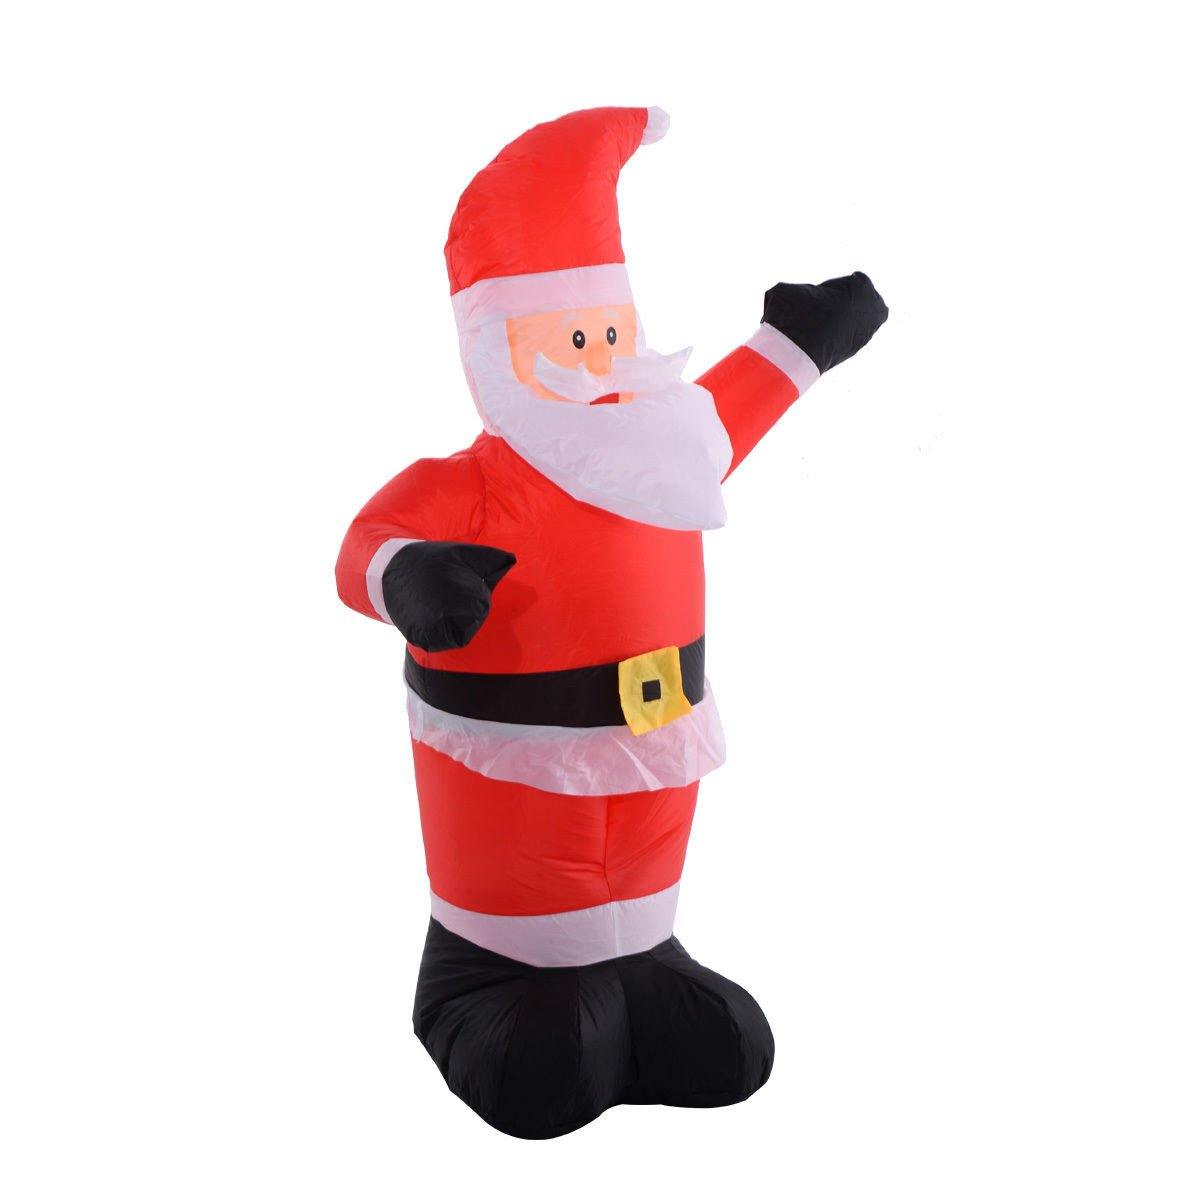 Tangkula 4Ft Airblown Inflatable Christmas Santa Claus Lighted Decor Lawn Yard Outdoor